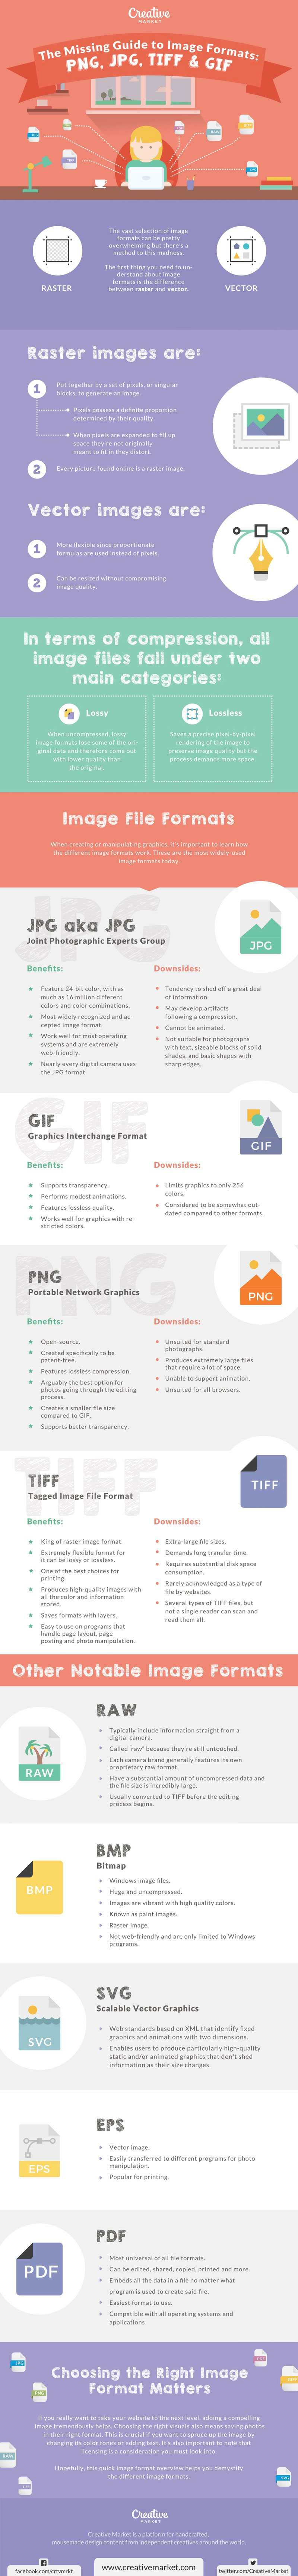 image-formats-missing-guide